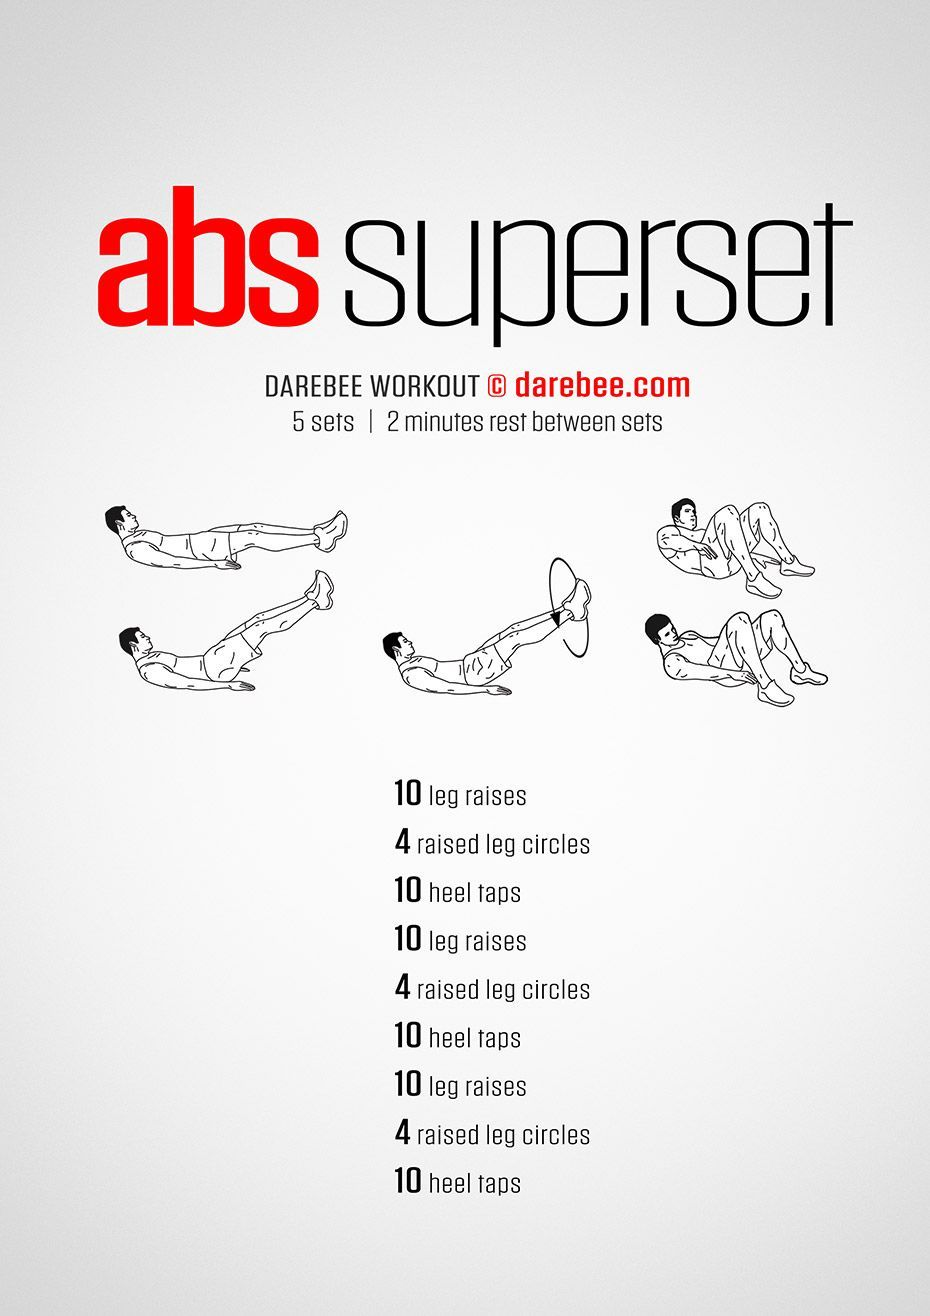 Abs Superset Workout by DAREBEE #workout #fitness #darebee #abs #core #workoutclub